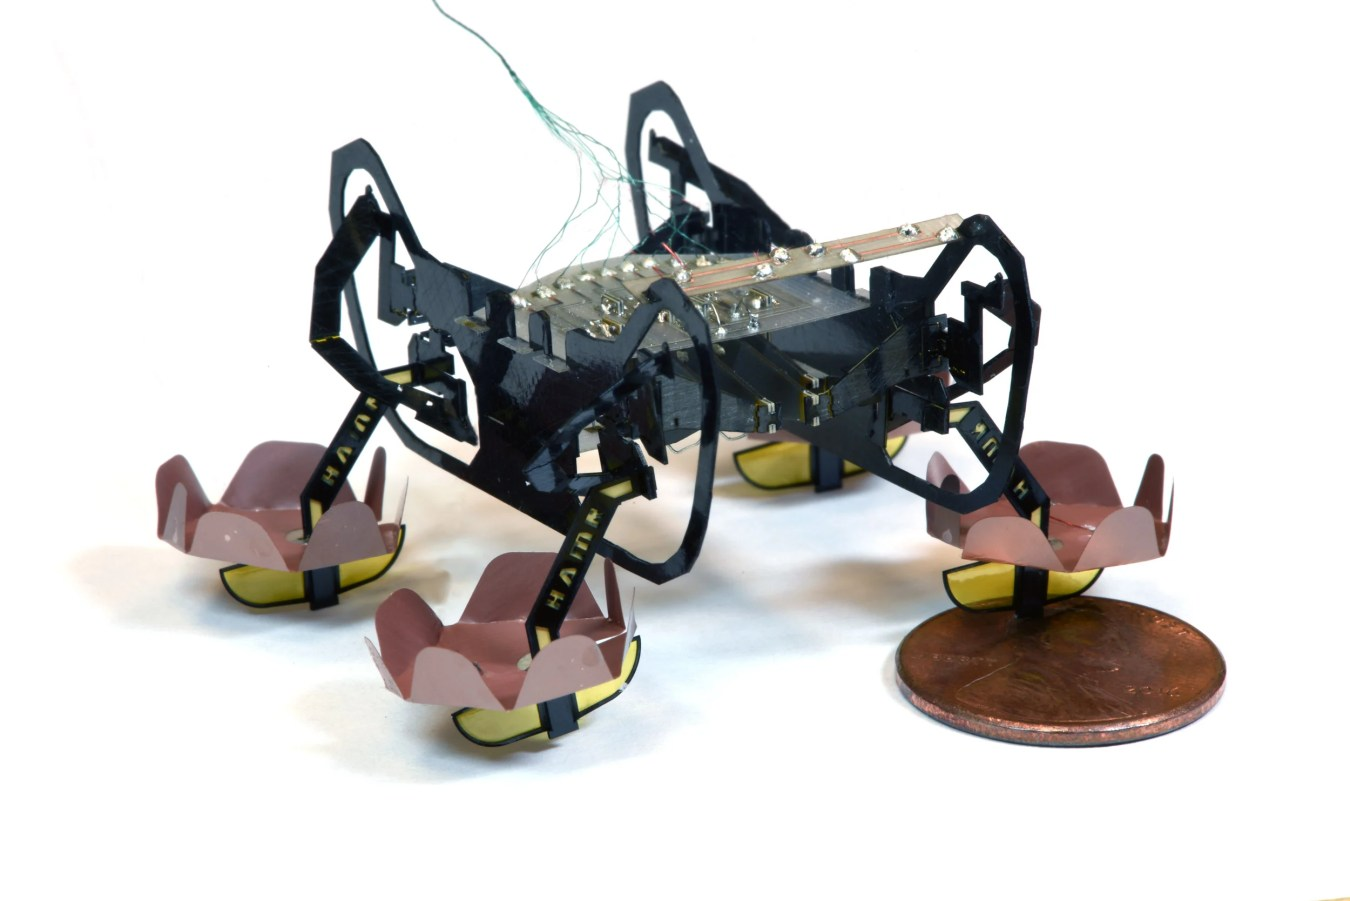 Harvard's Ambulatory Microrobot.